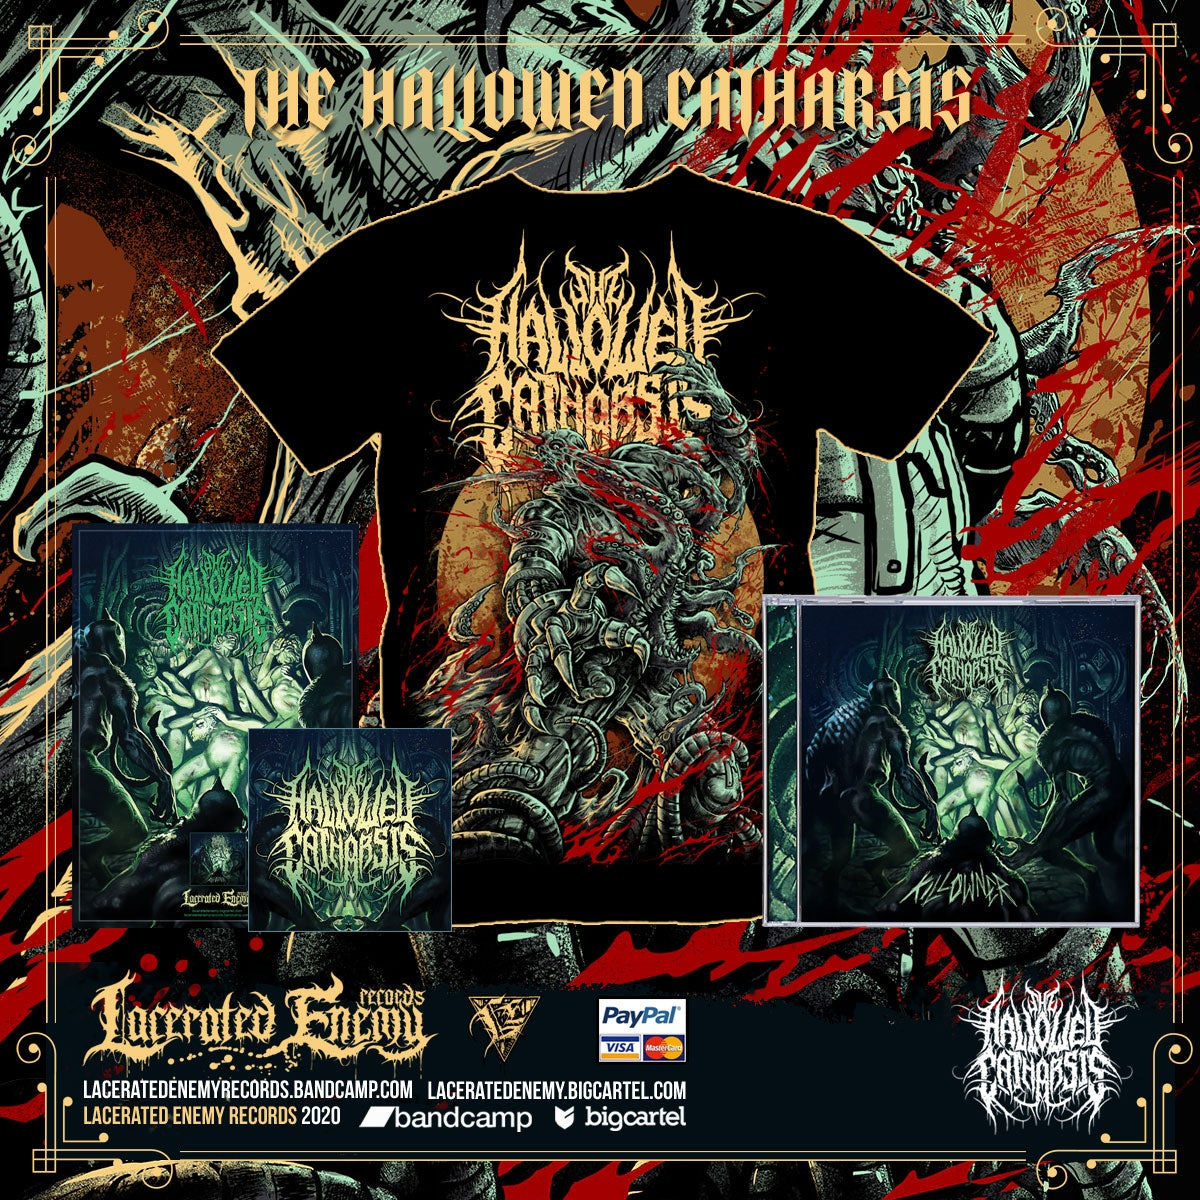 THE HALLOWED CATHARSIS - Forced Mutation TS Bundle